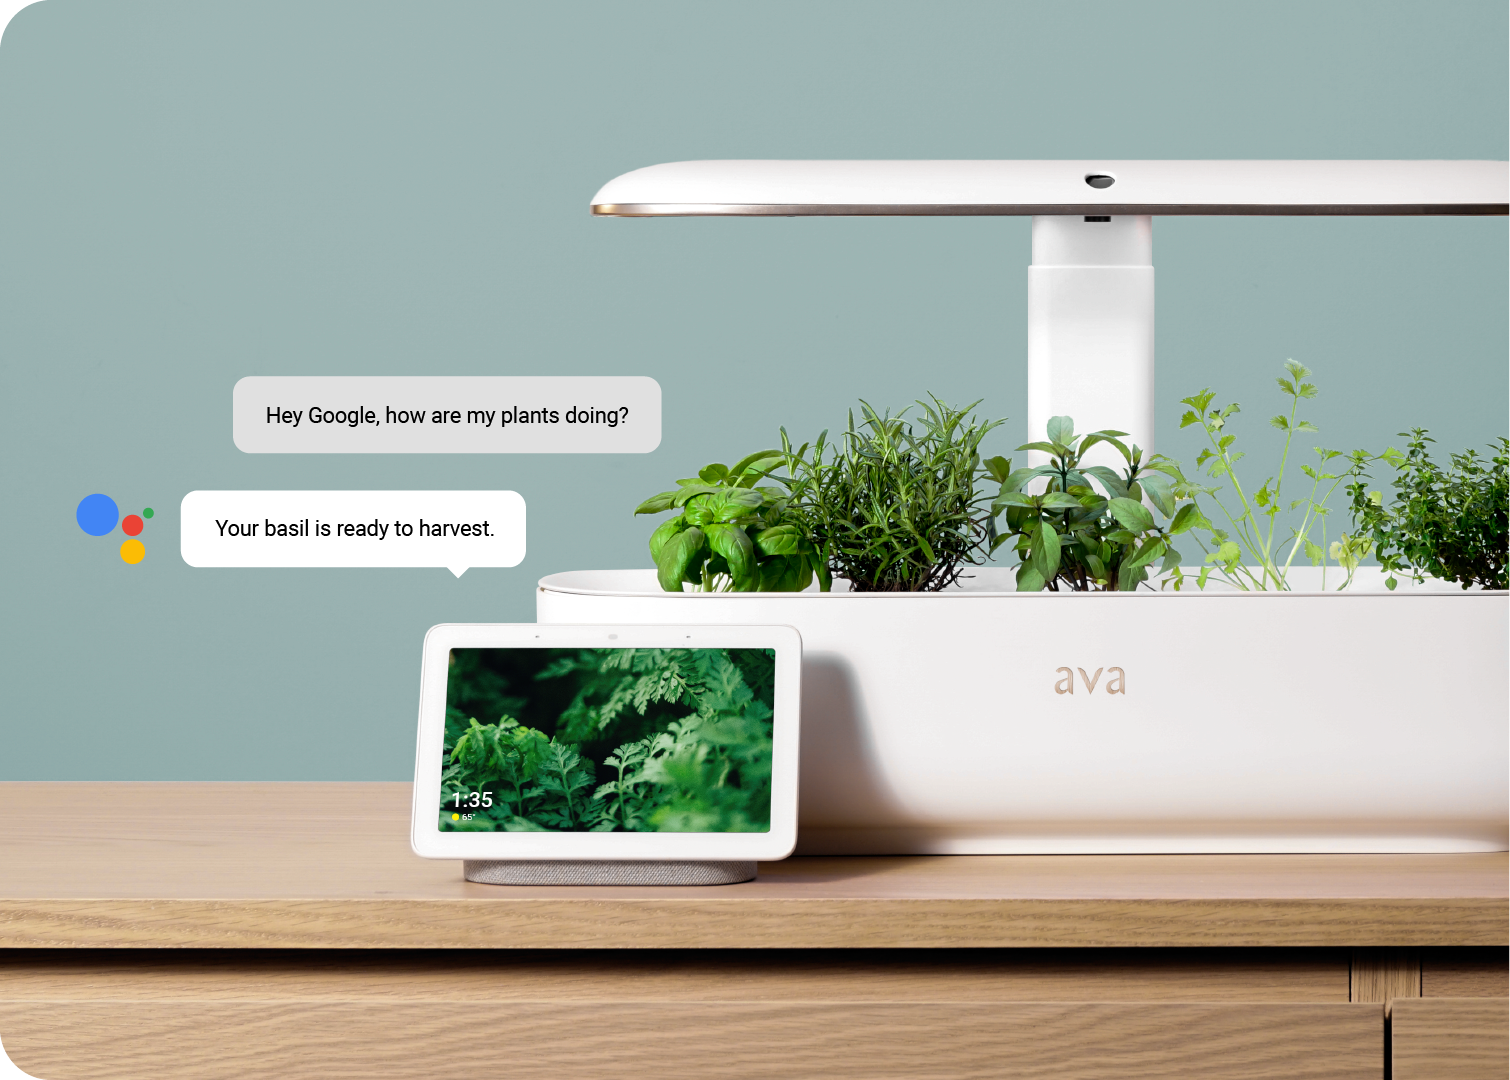 """The Smartest Garden Yet - The AVA byte features optimized horticultural lighting designed specifically for fast plant growth and smart watering cycles that adapt to your plants. A built-in camera records time lapse videos of your plants. Even better, the device is smart home enabled for Google Home and Alexa - just ask """"How's my garden?"""""""